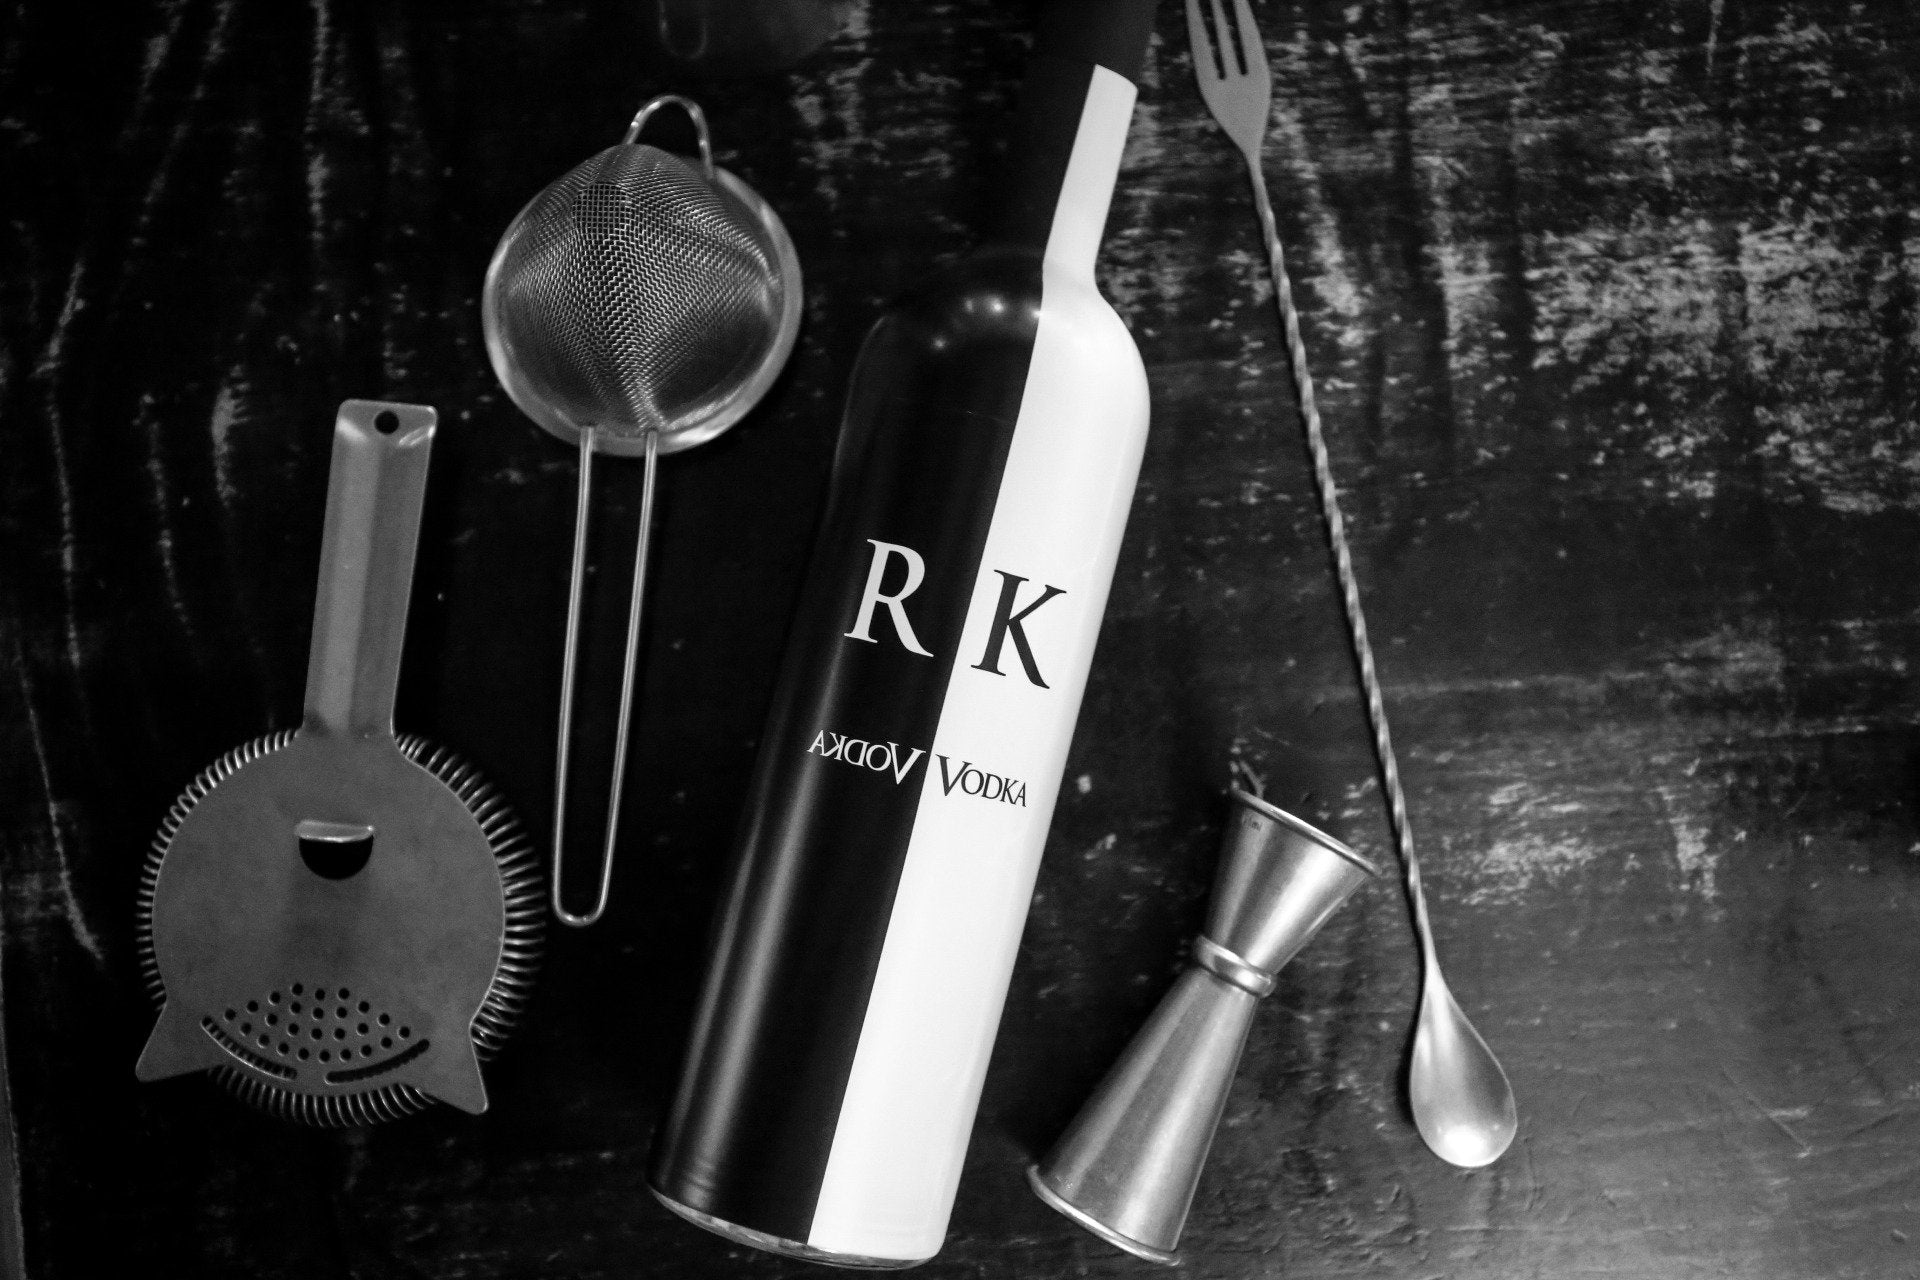 Spotlight on: RK Vodka